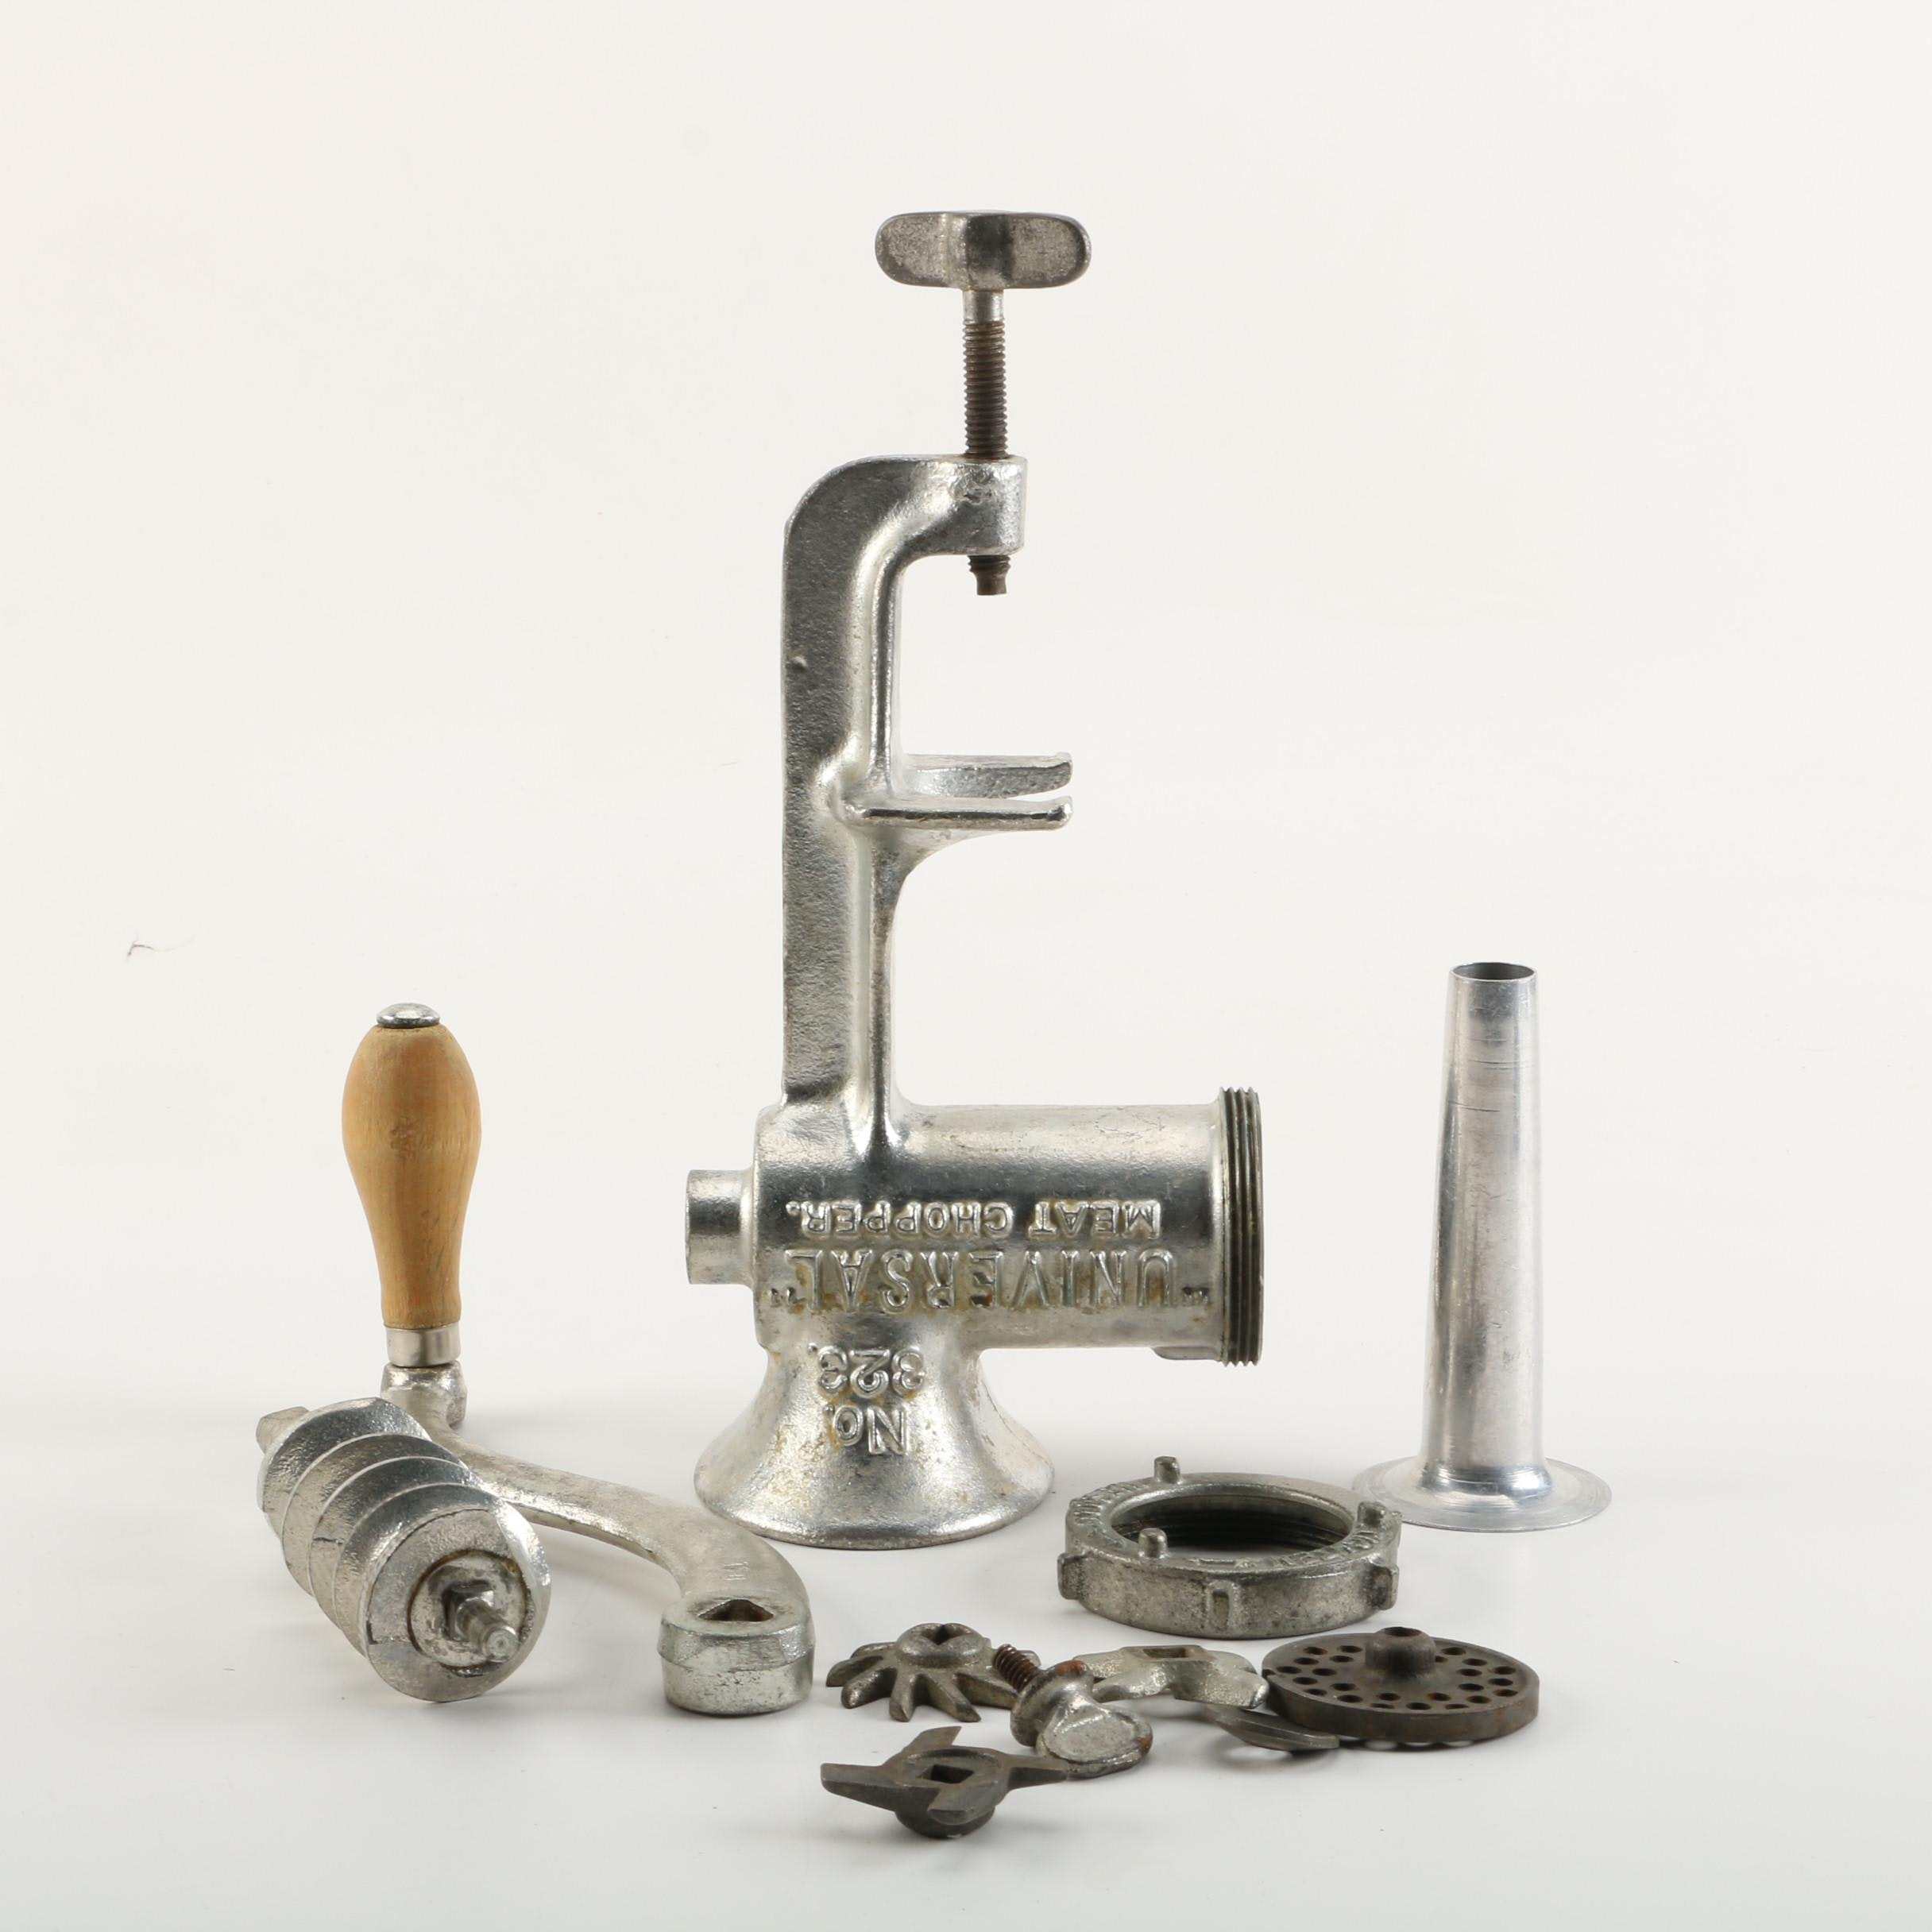 Vintage Meat Grinder and Accessories